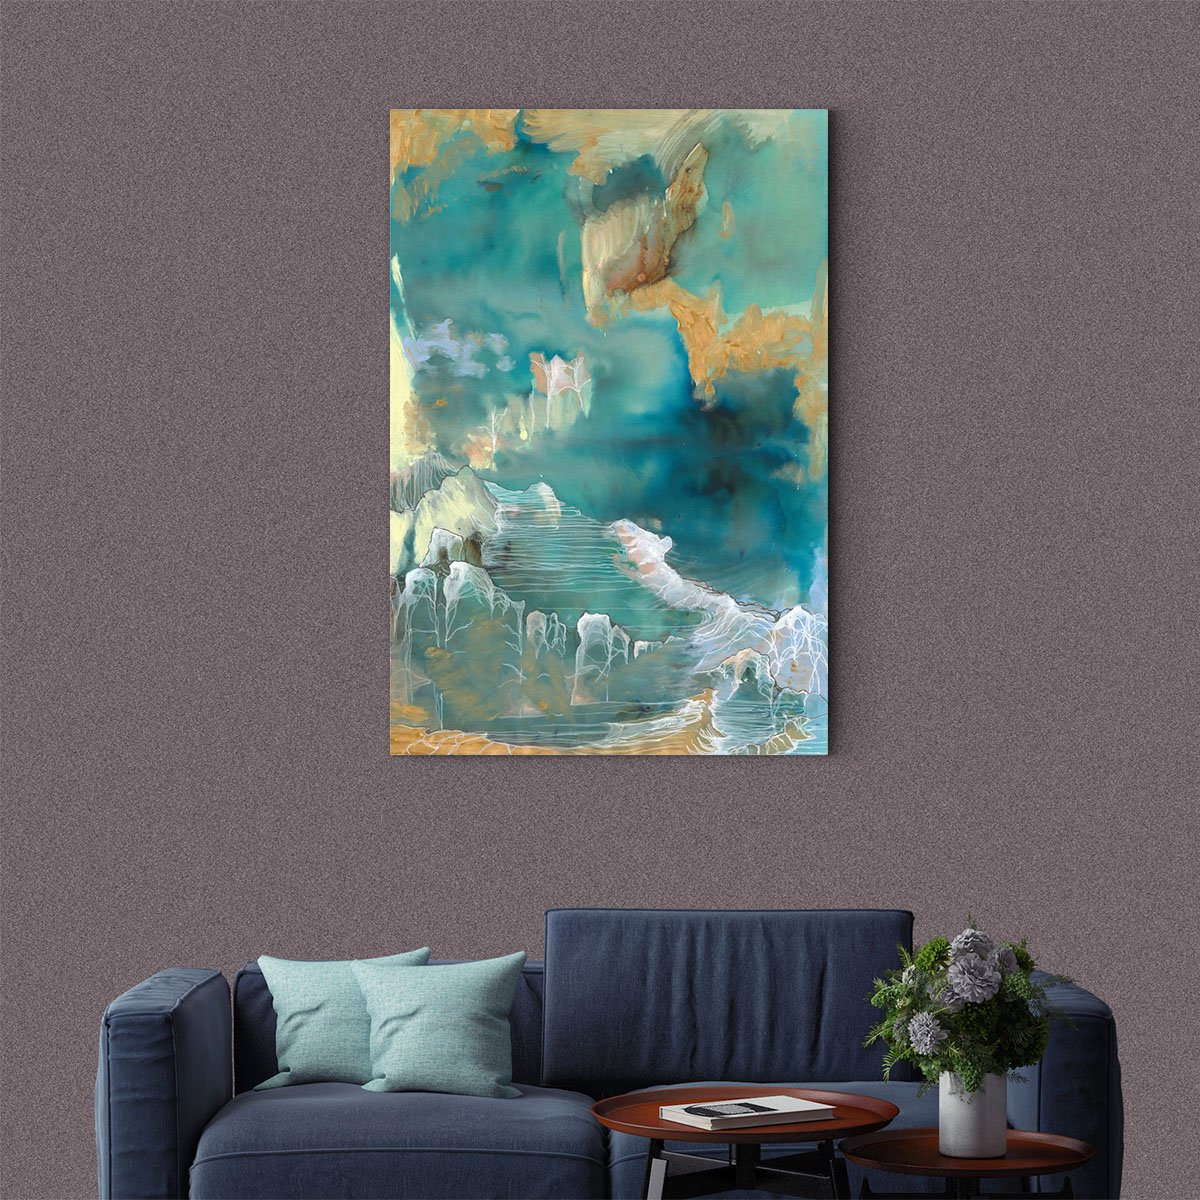 Rough waves abstract decorative painting 005